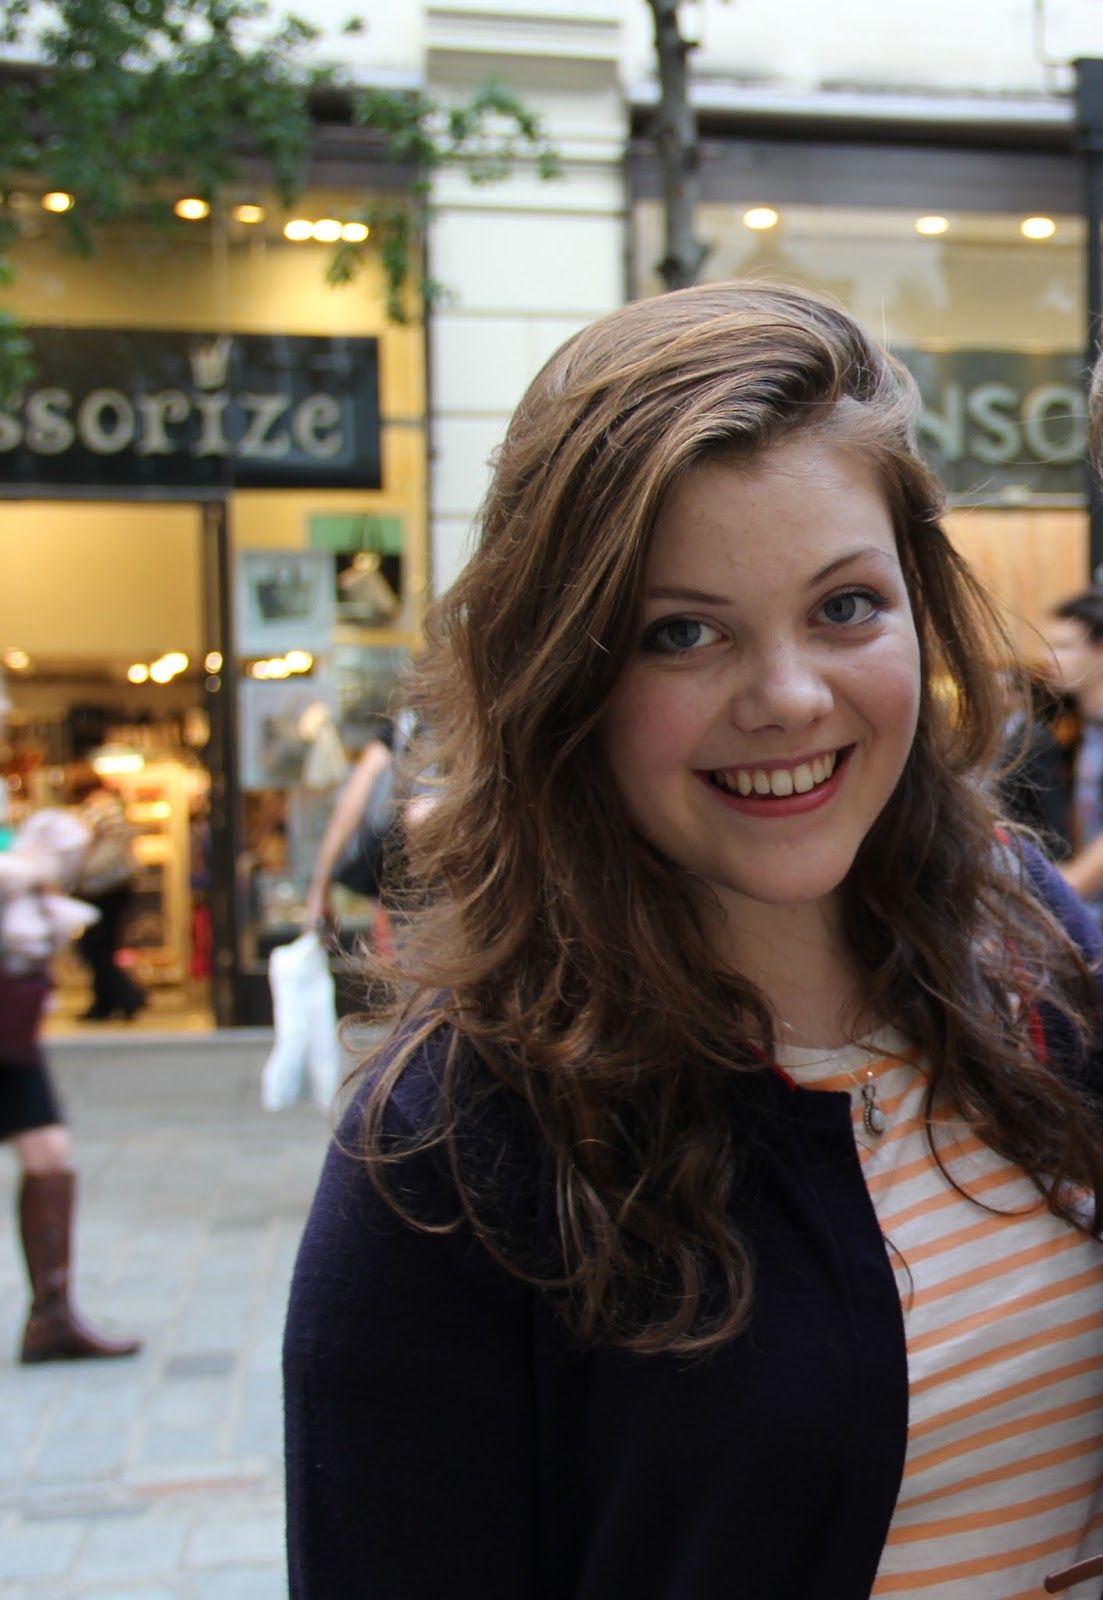 Georgie Henley (born 1995) Georgie Henley (born 1995) new pictures